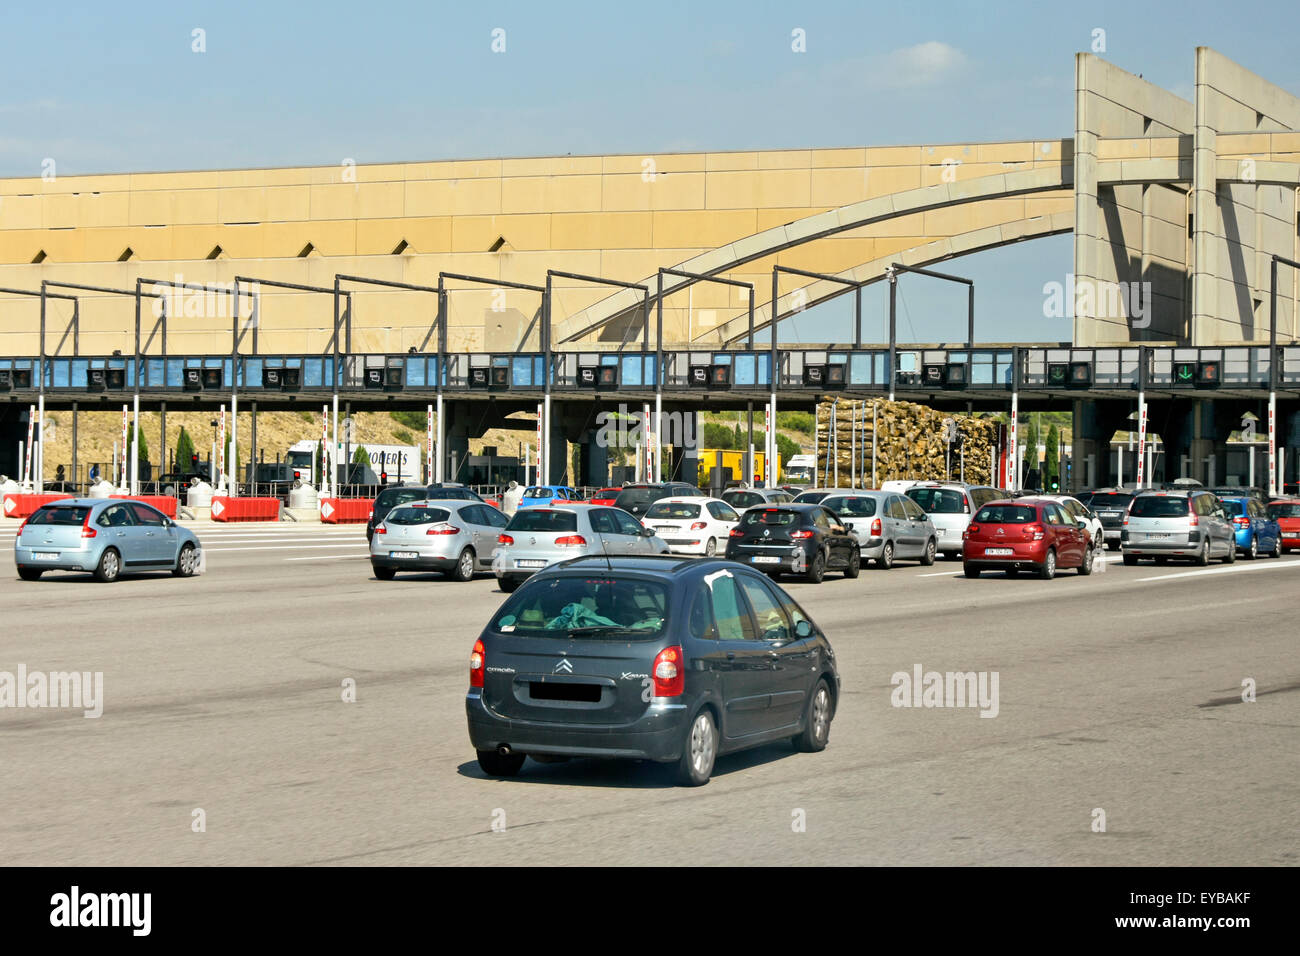 France motorway cars arriving at typical toll booths on the French Autoroute au Soleil route in Provence South of - Stock Image